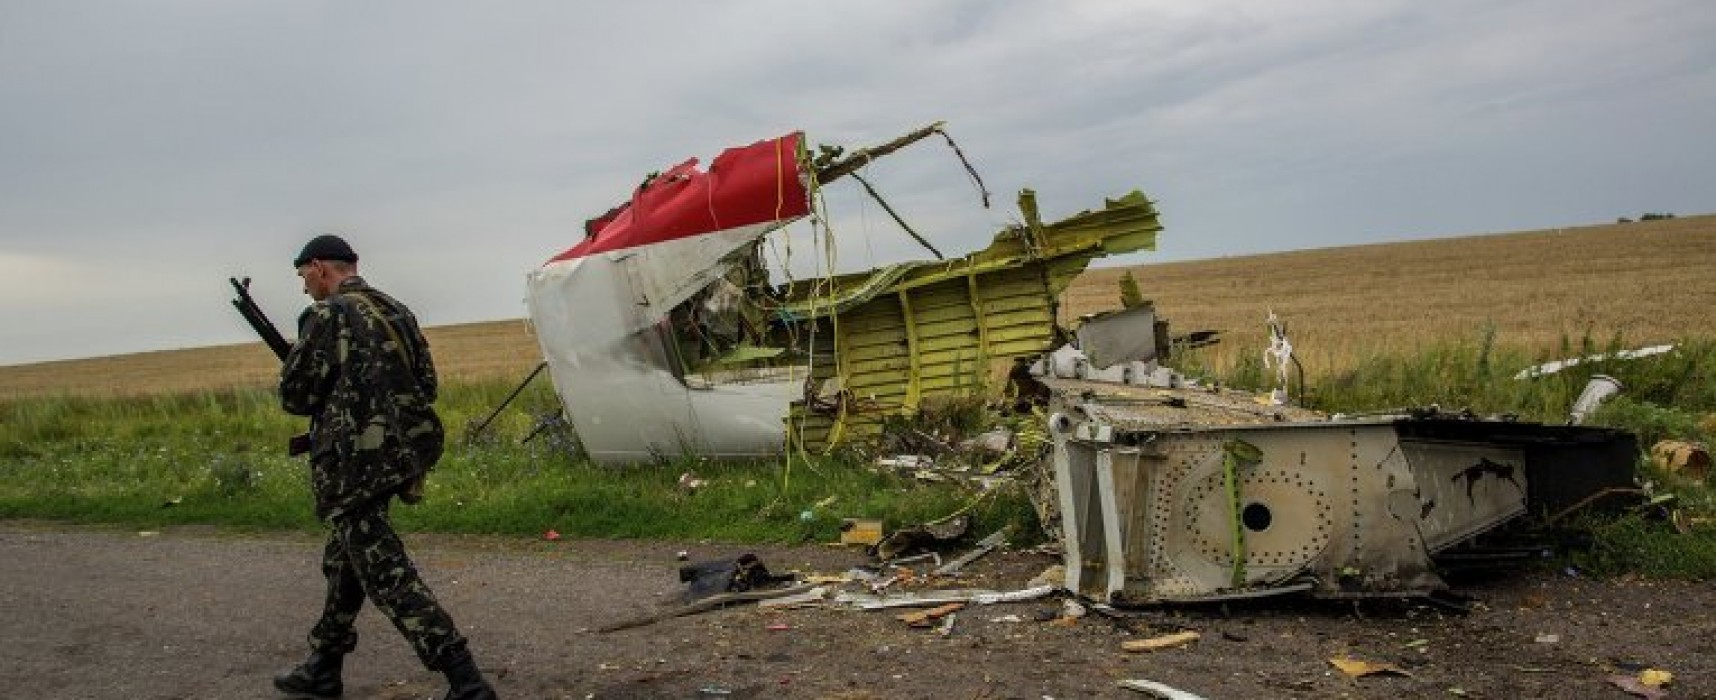 Malaysian Boeing MH17 Tragedy: Questions and Answers